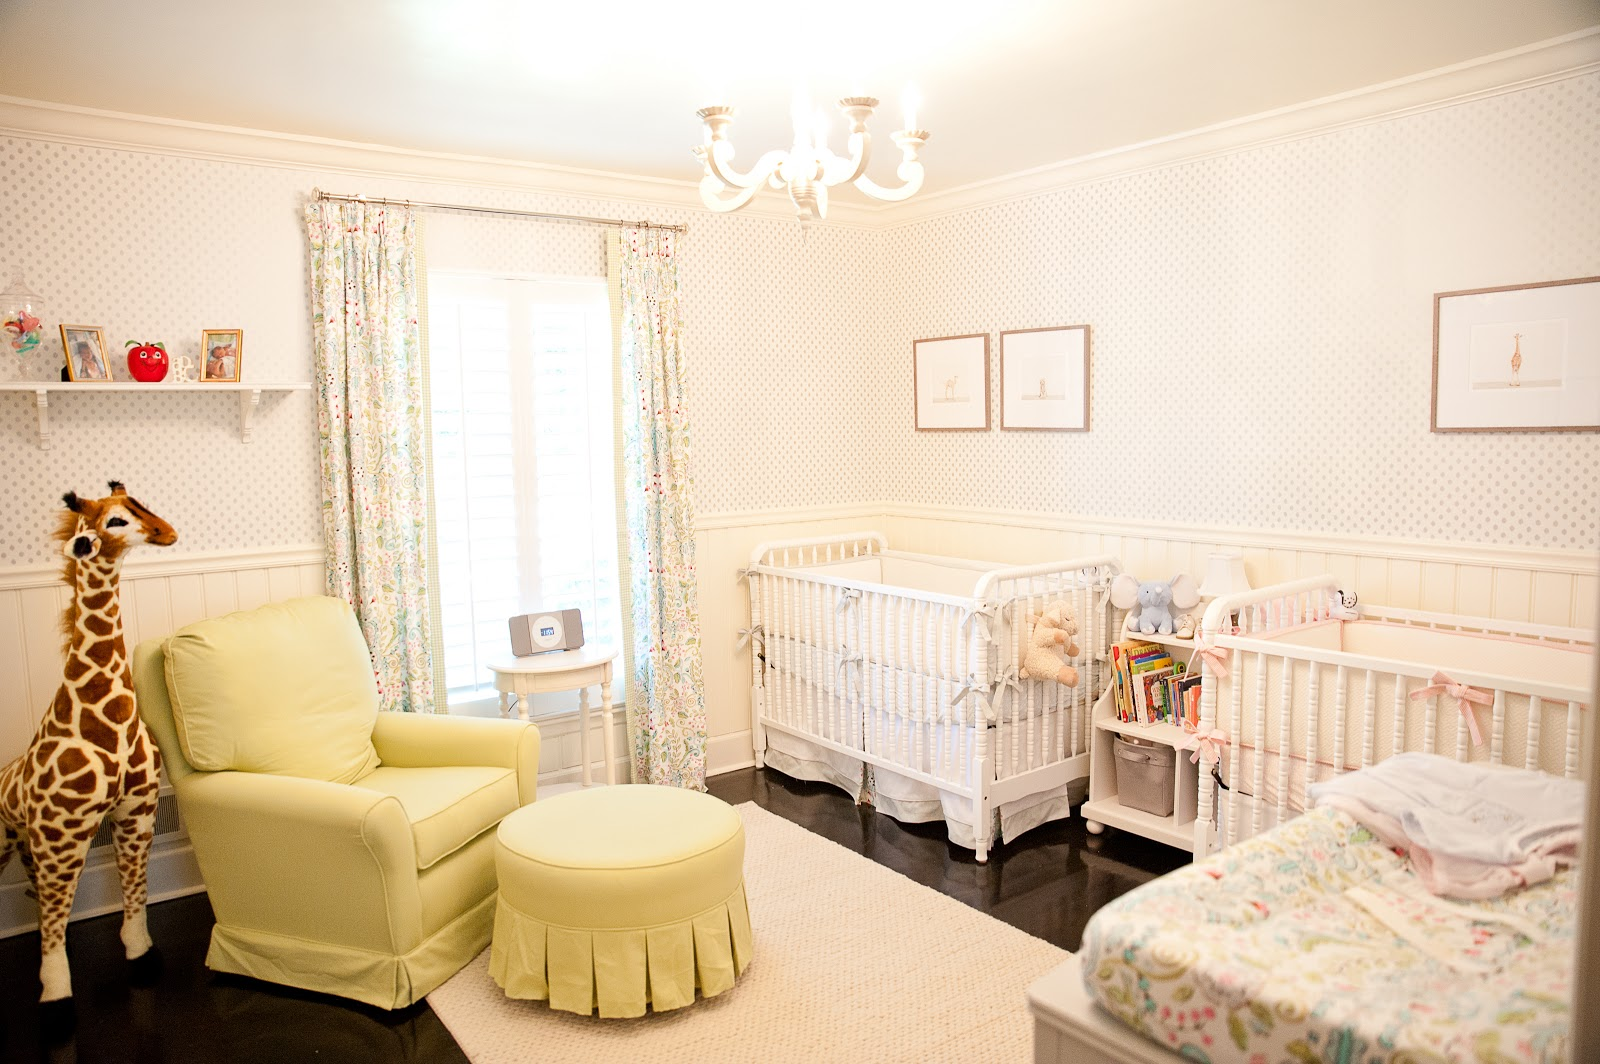 A nursery that is radiating warmth and glee